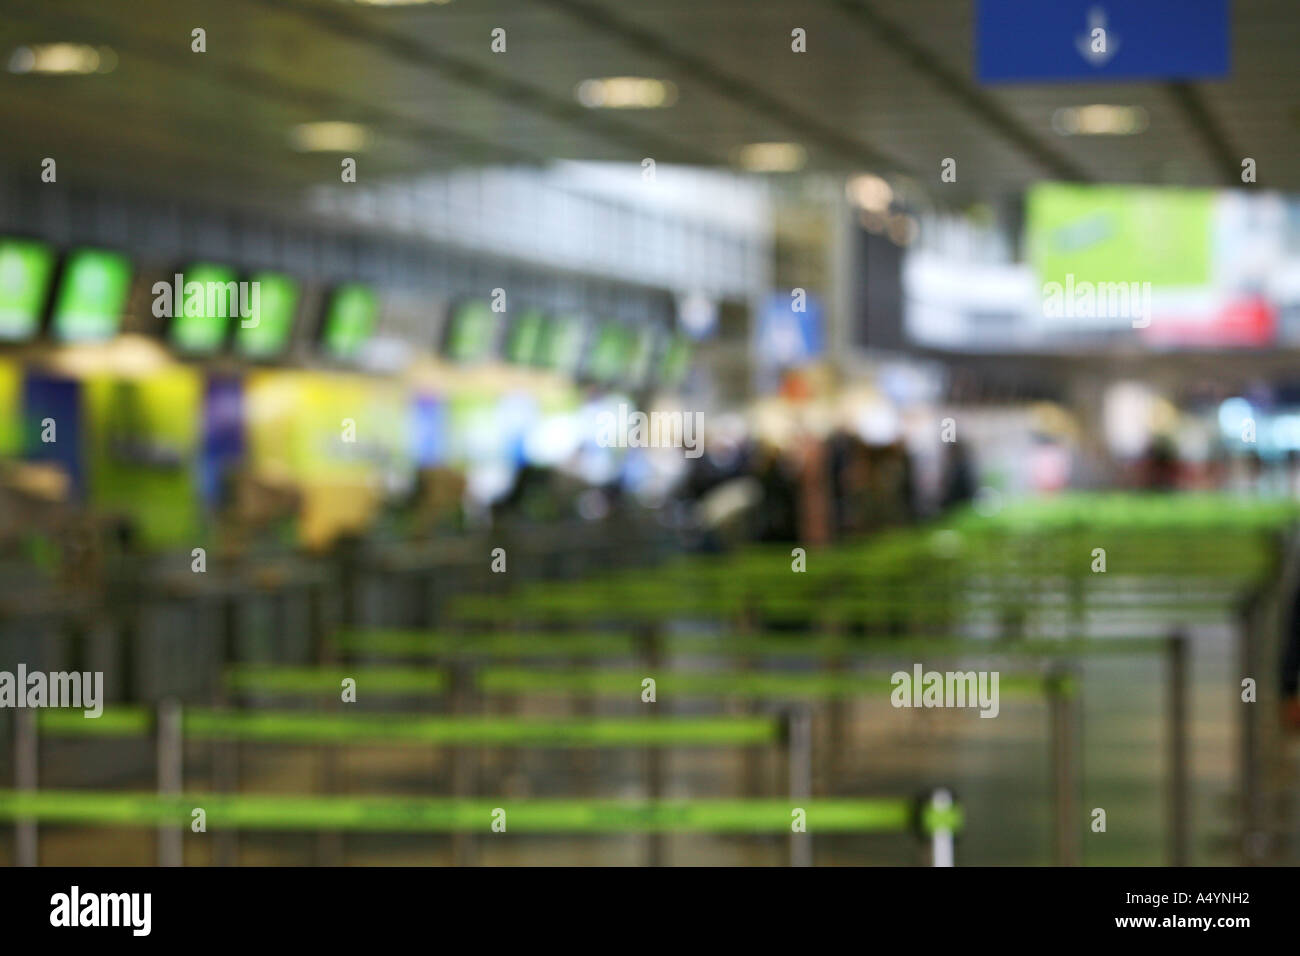 Check in at the airport (blurred background image) - Stock Image